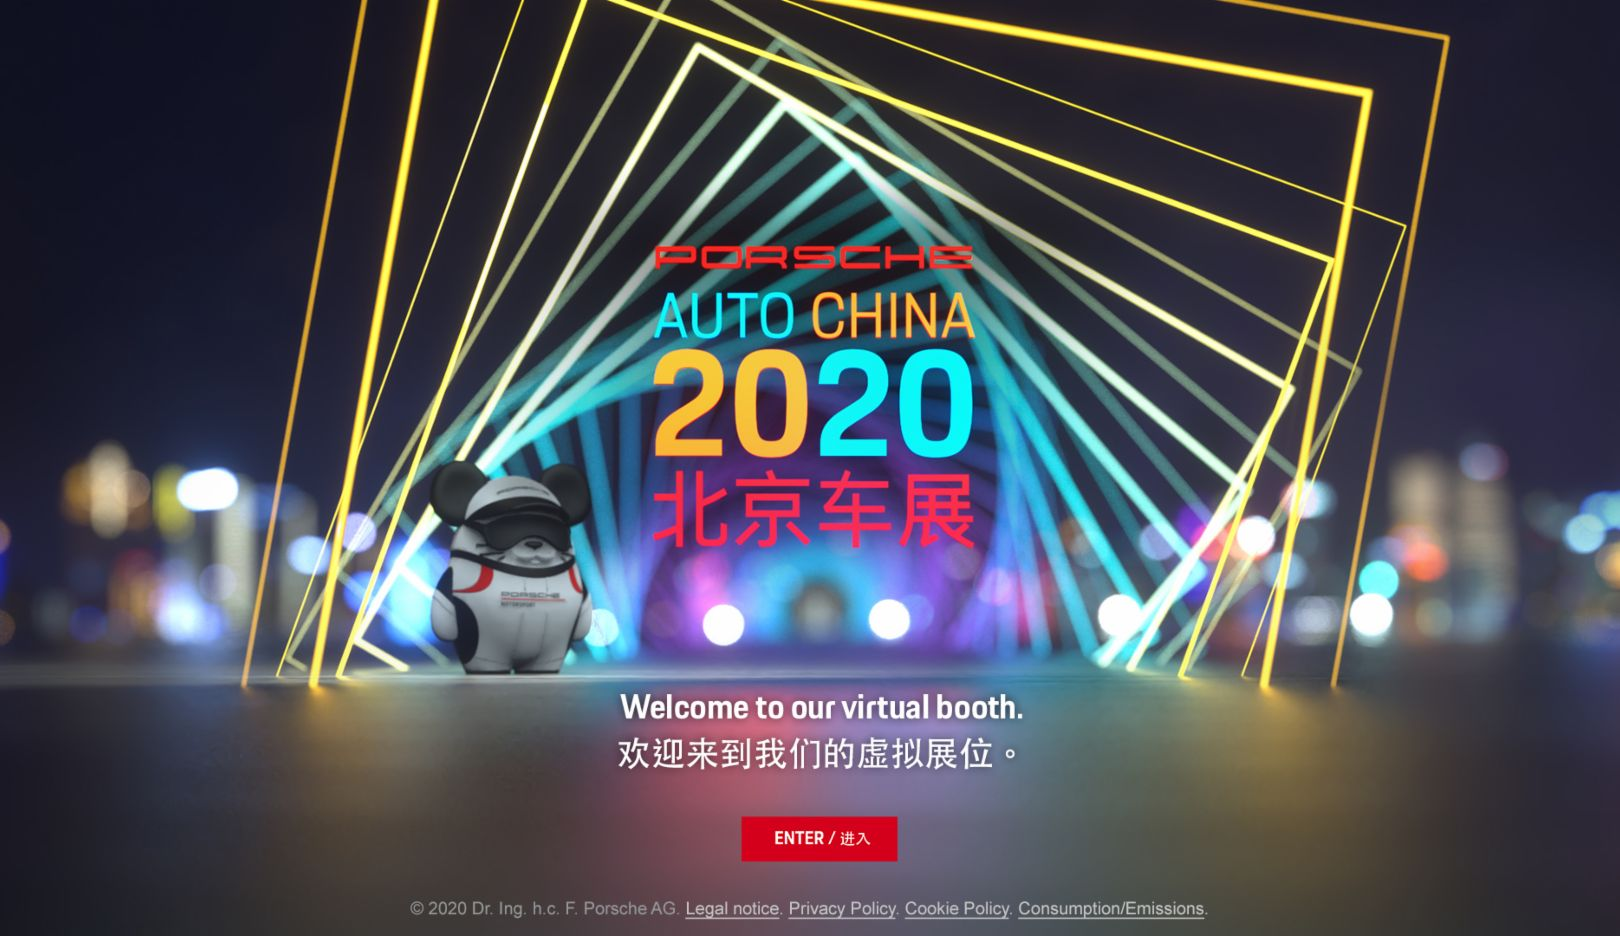 Real and virtual presence at the Beijing Auto Show - Image 2